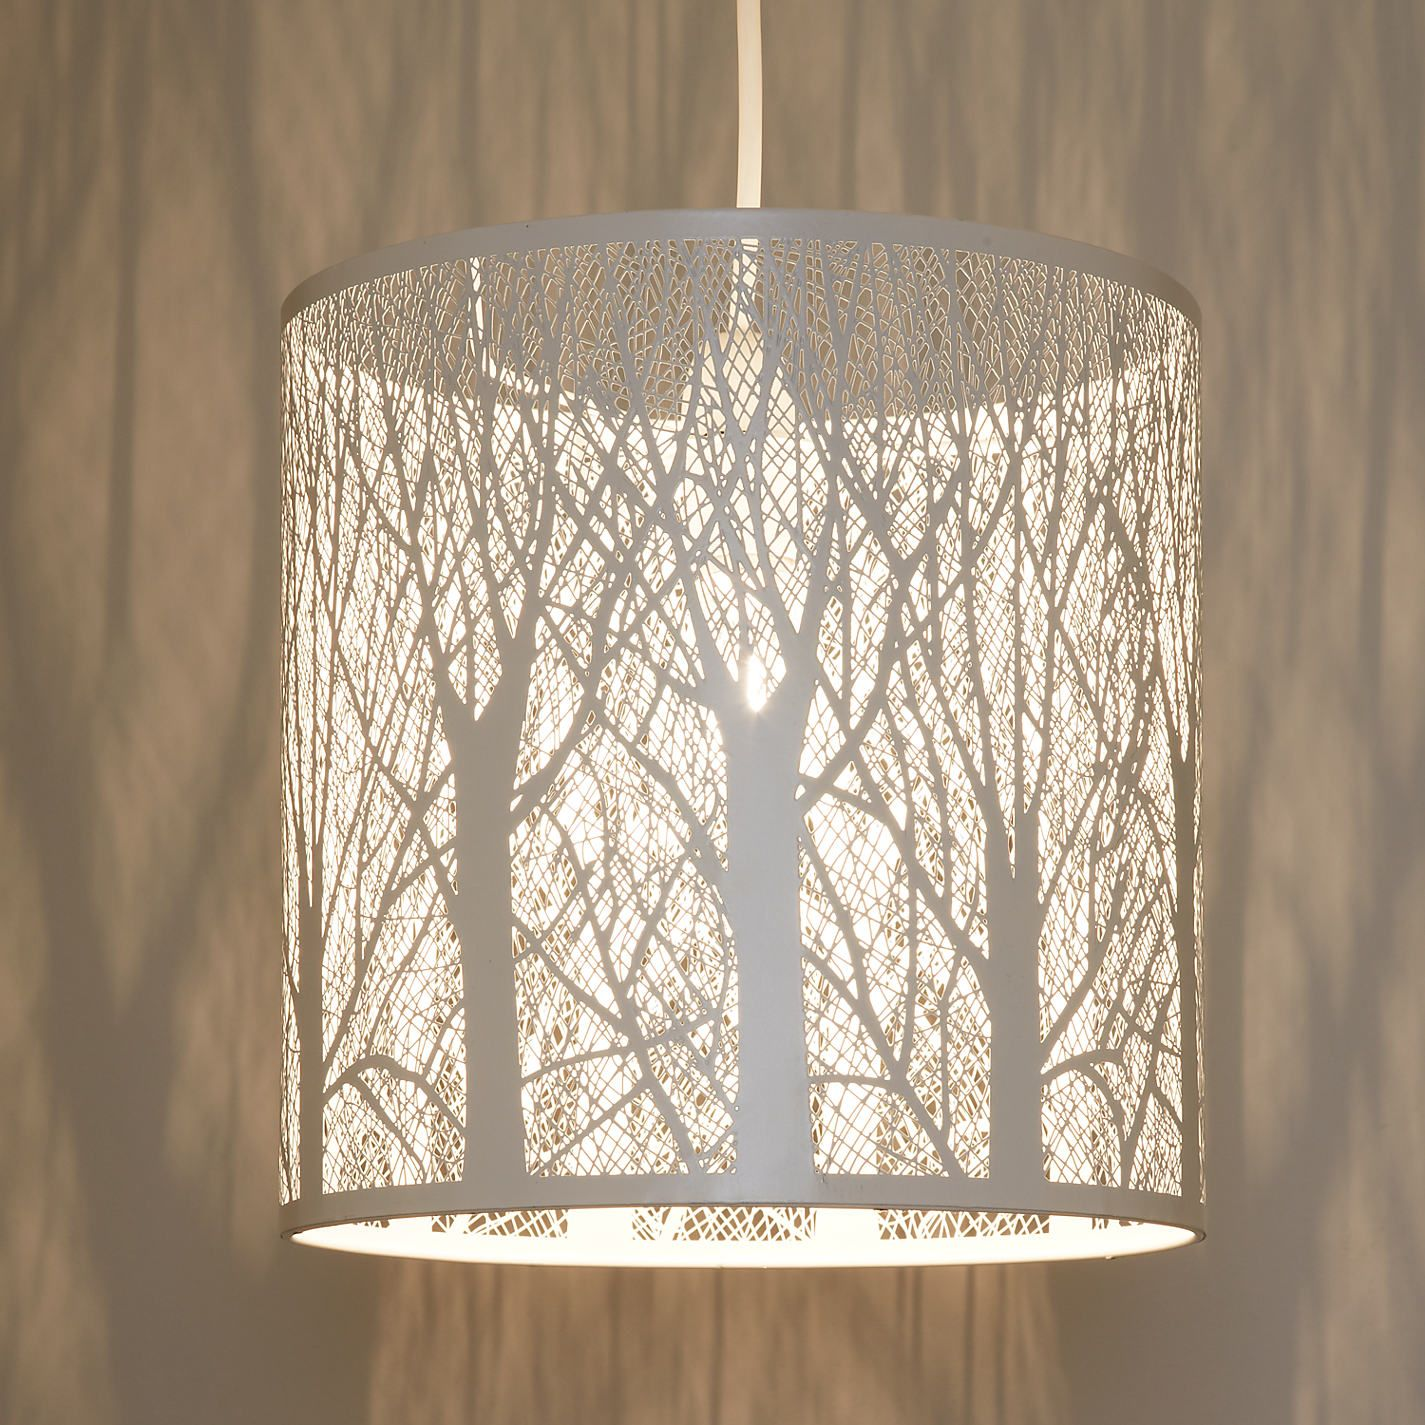 Easy Ceiling Lamp Shade: John Lewis & Partners Devon Easy-to-Fit Small Ceiling